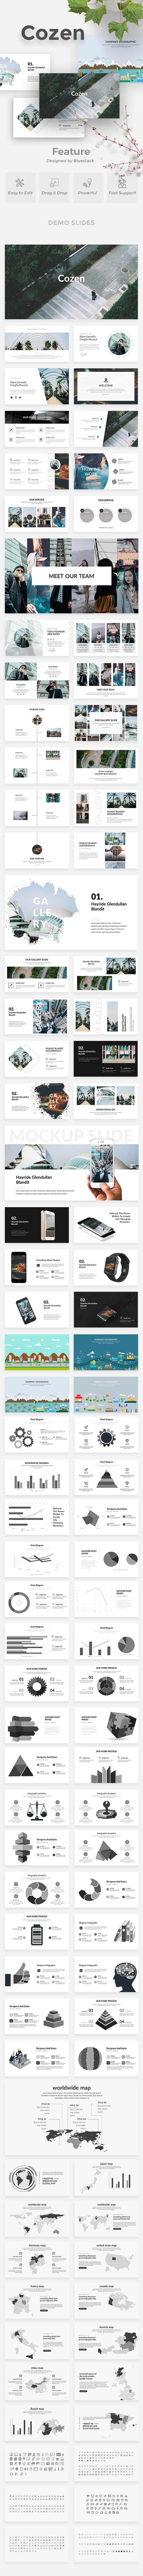 Best 50+ DESIGN THINKING // POWERPOINT TEMPLATES images on Pinterest ...